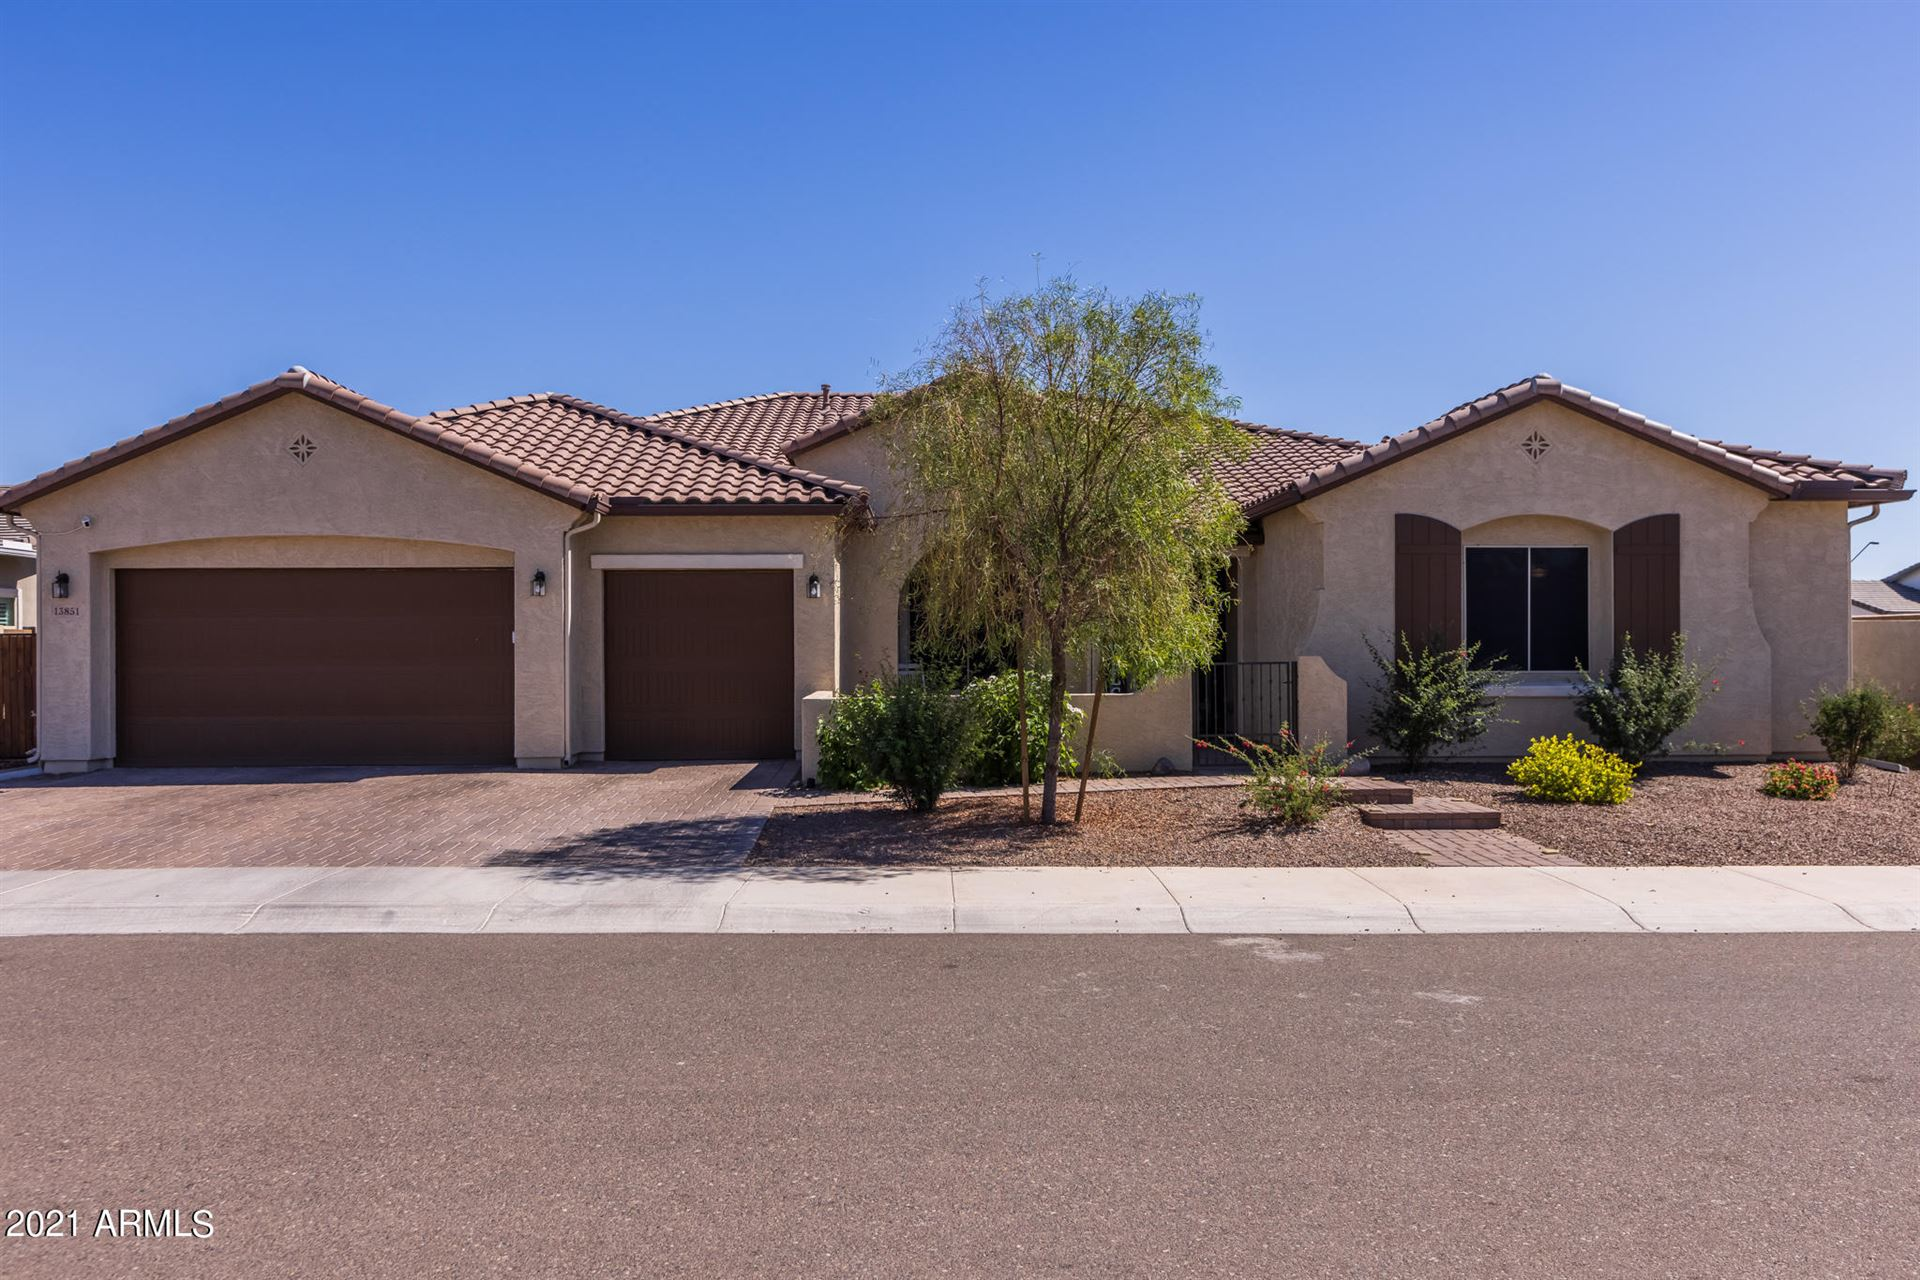 Photo of 13851 W WEAVER Court, Litchfield Park, AZ 85340 (MLS # 6231969)